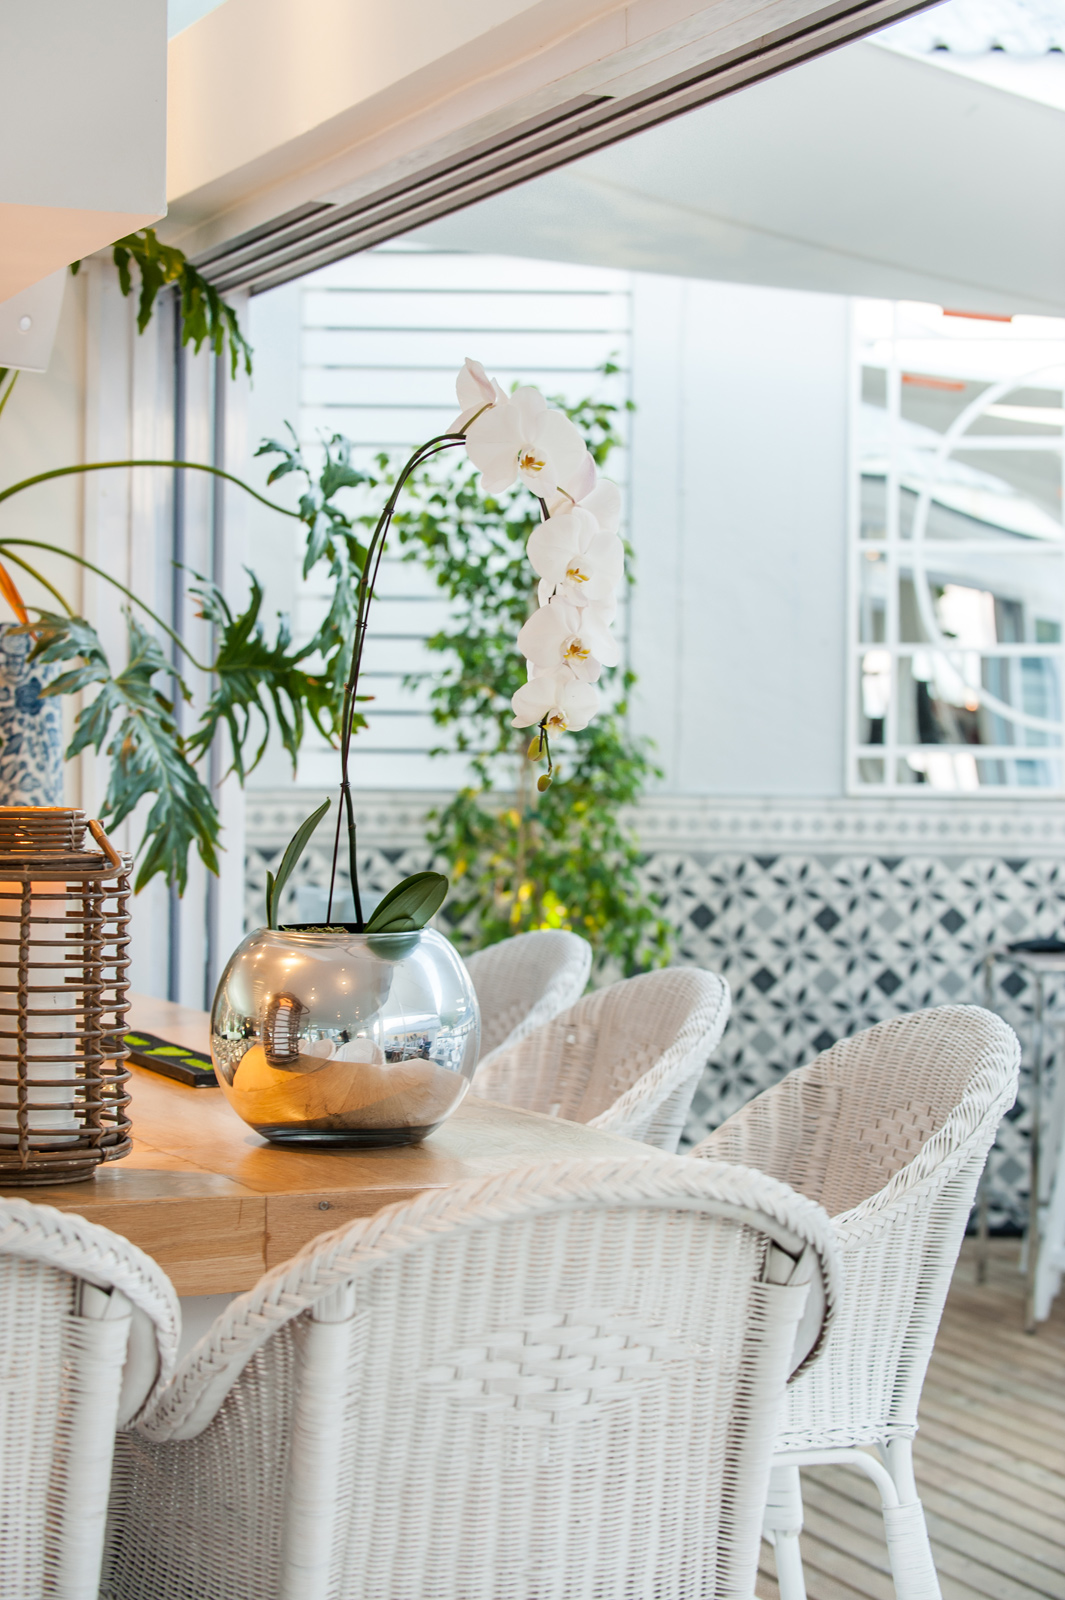 Harbour House Restaurant, Kalk Bay by CODE / Collaborative Design